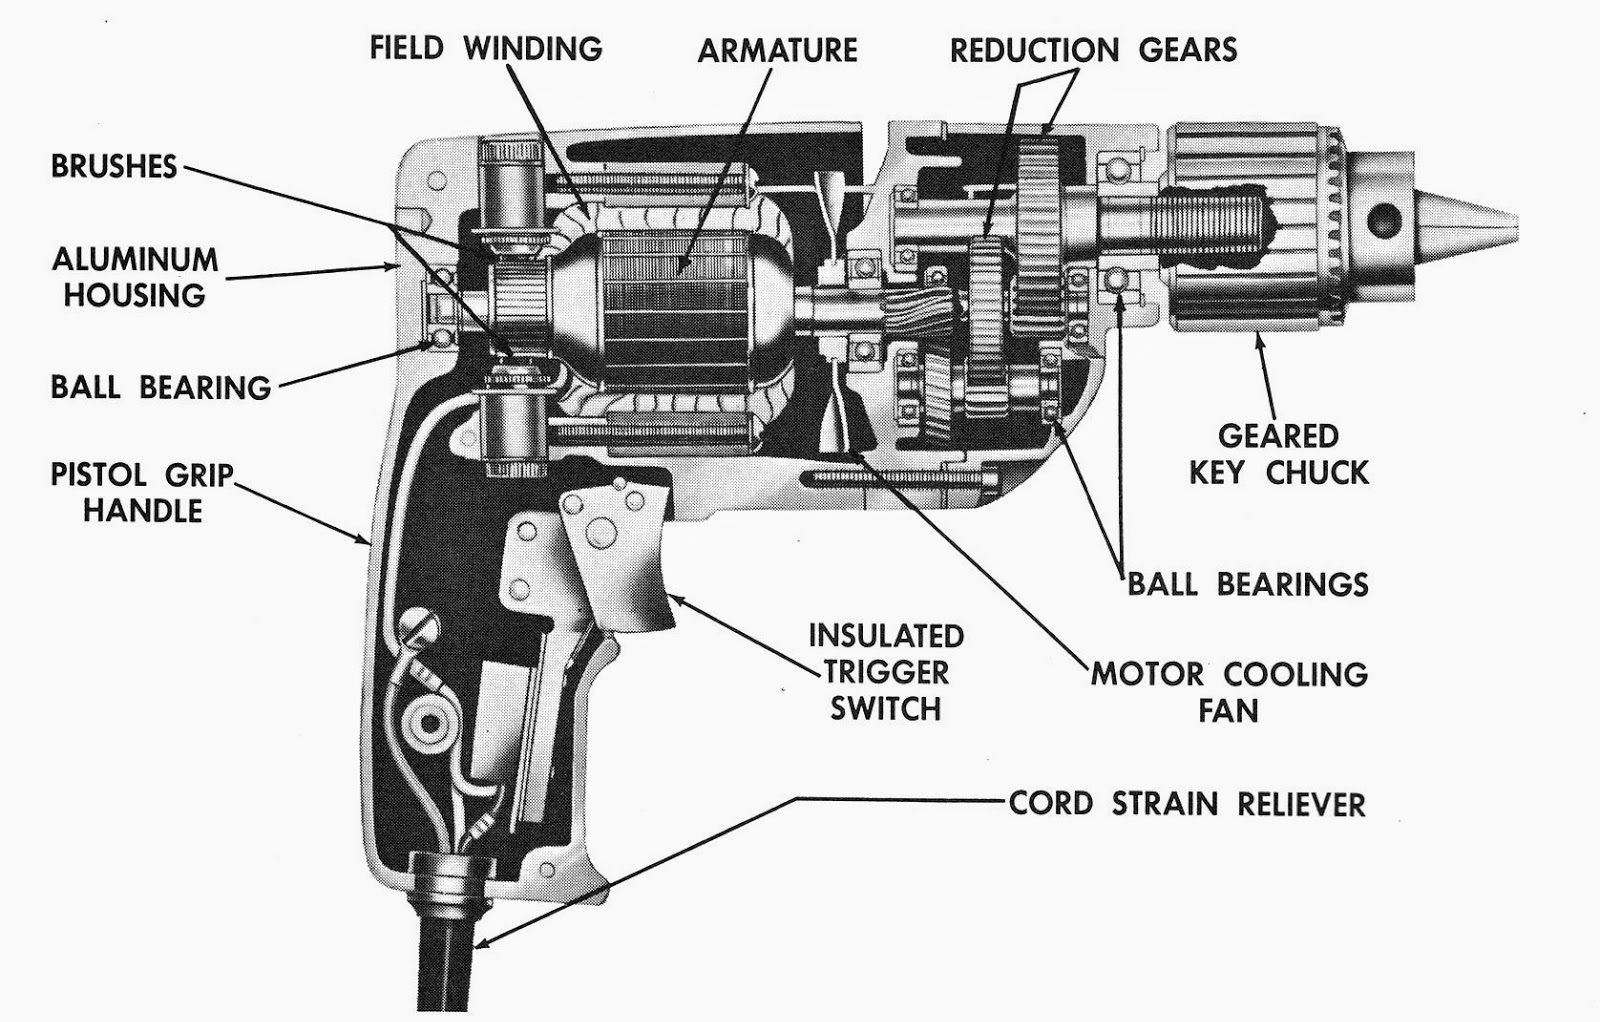 medium resolution of image result for parts of an electric drill drill electric drill press hole